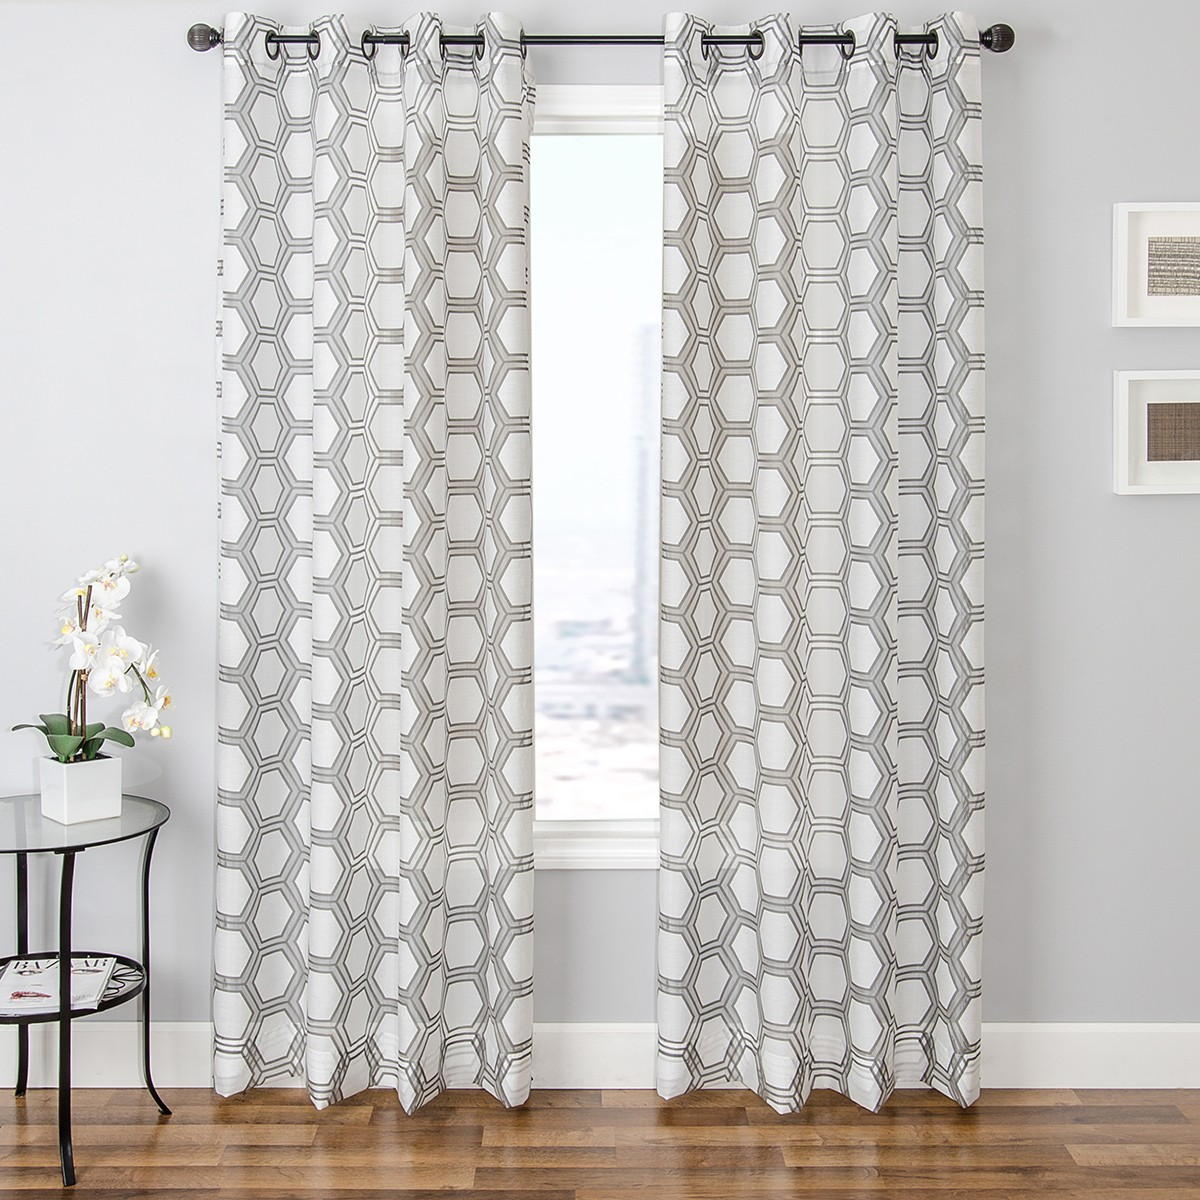 Elegant White Patterned Curtains